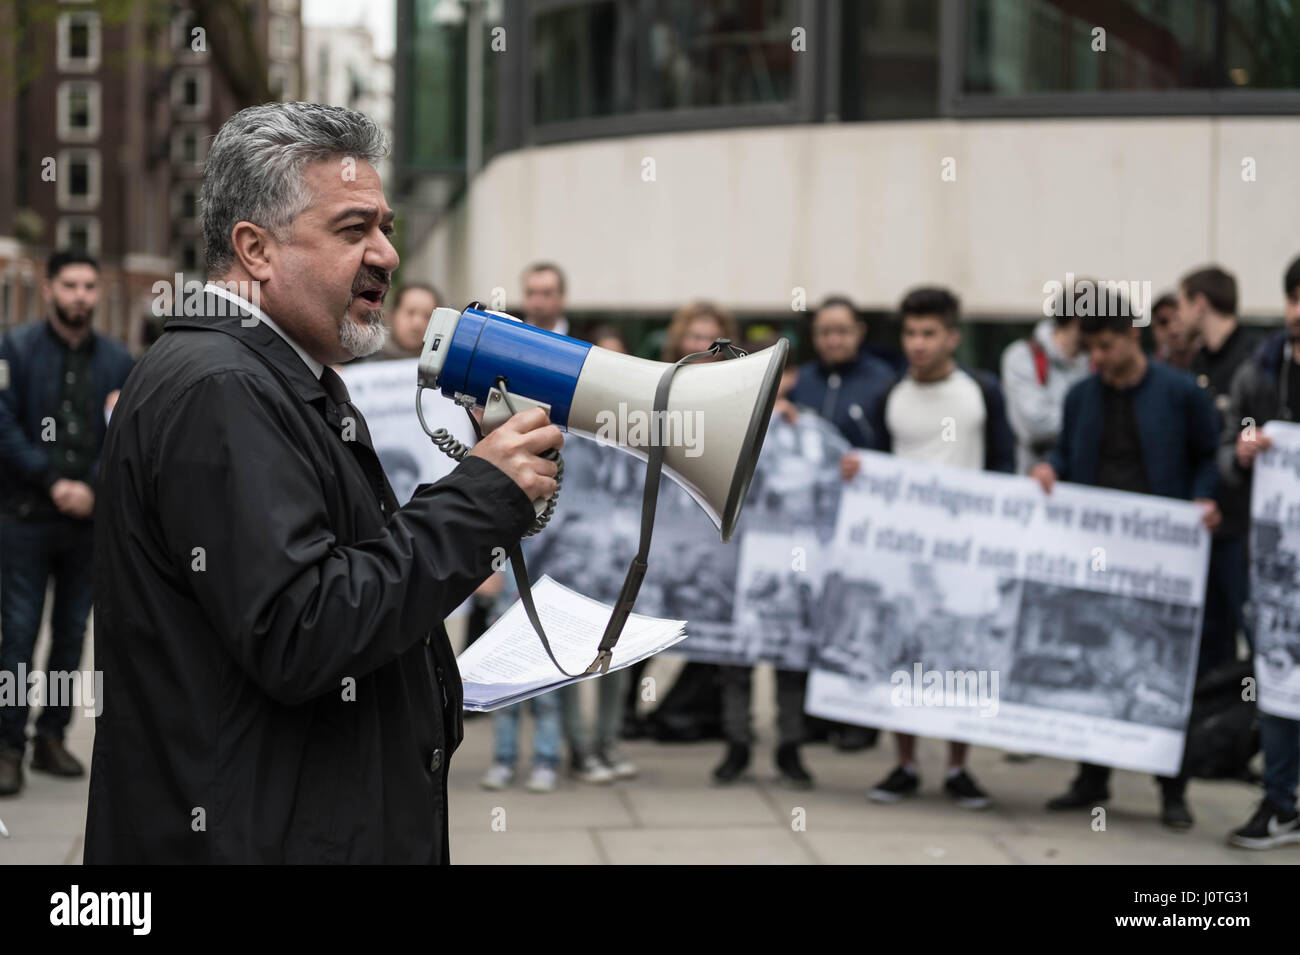 London, UK. 13th April, 2017. Dashty Jamal addresses members of the UK's Iraqi community and supporters attending - Stock Image